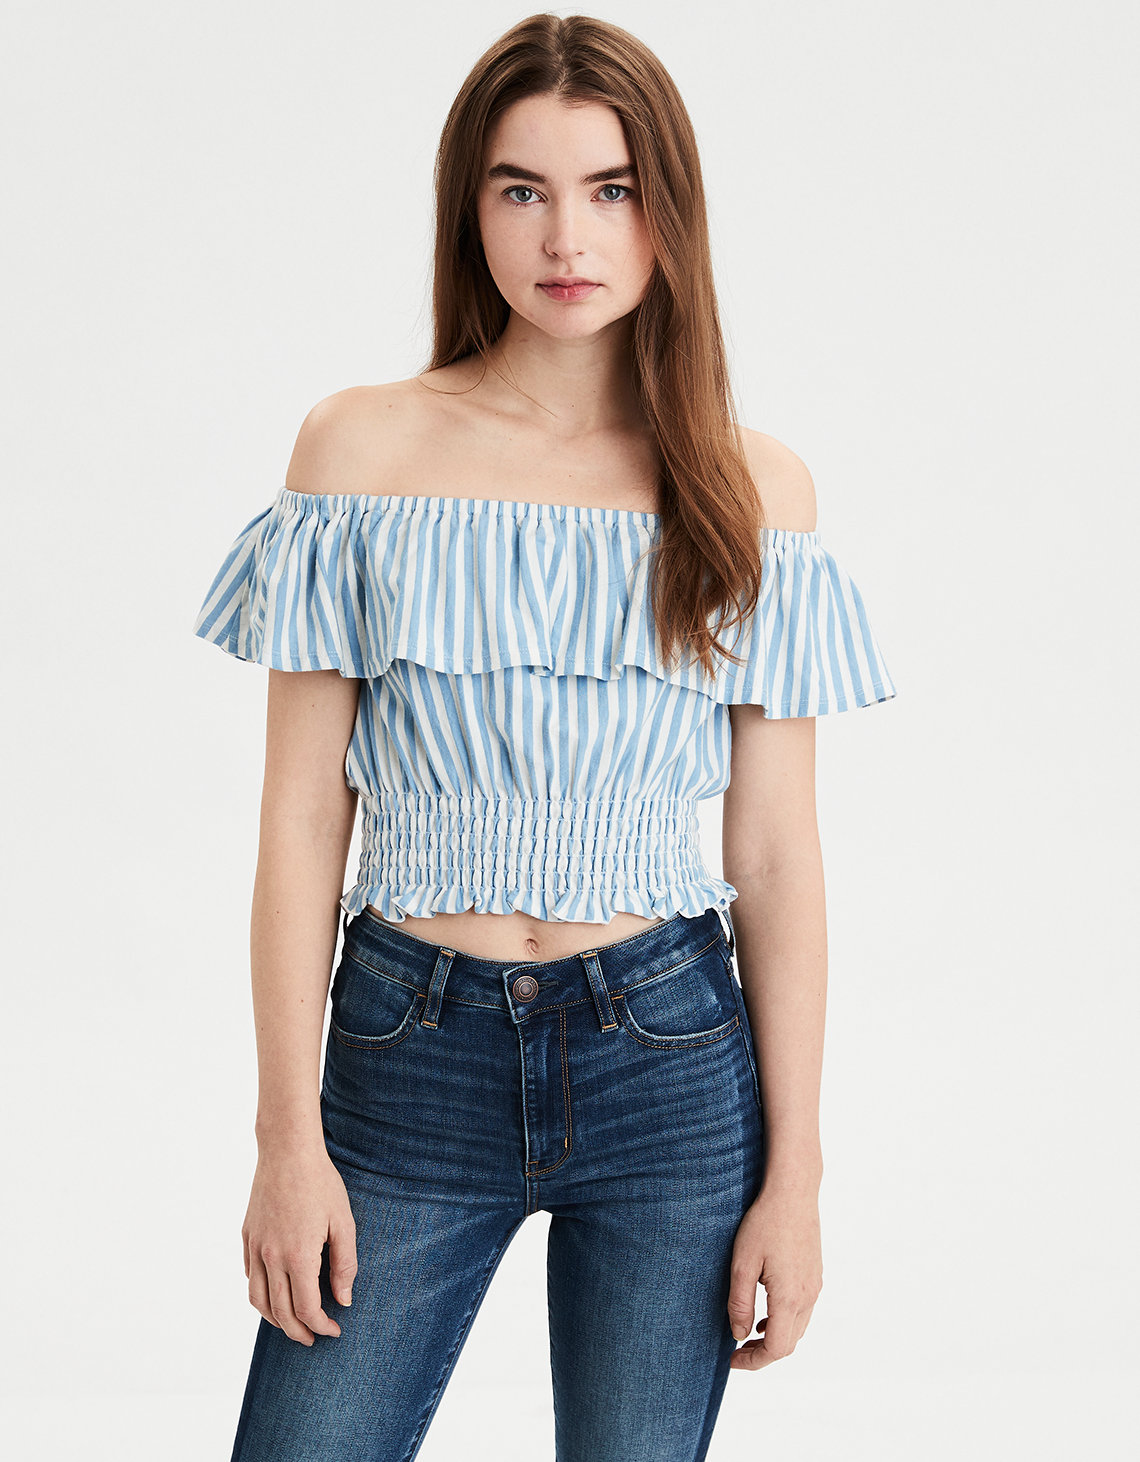 3474f740e4b5b AE Smocked Off The Shoulder Tee. Placeholder image. Product Image